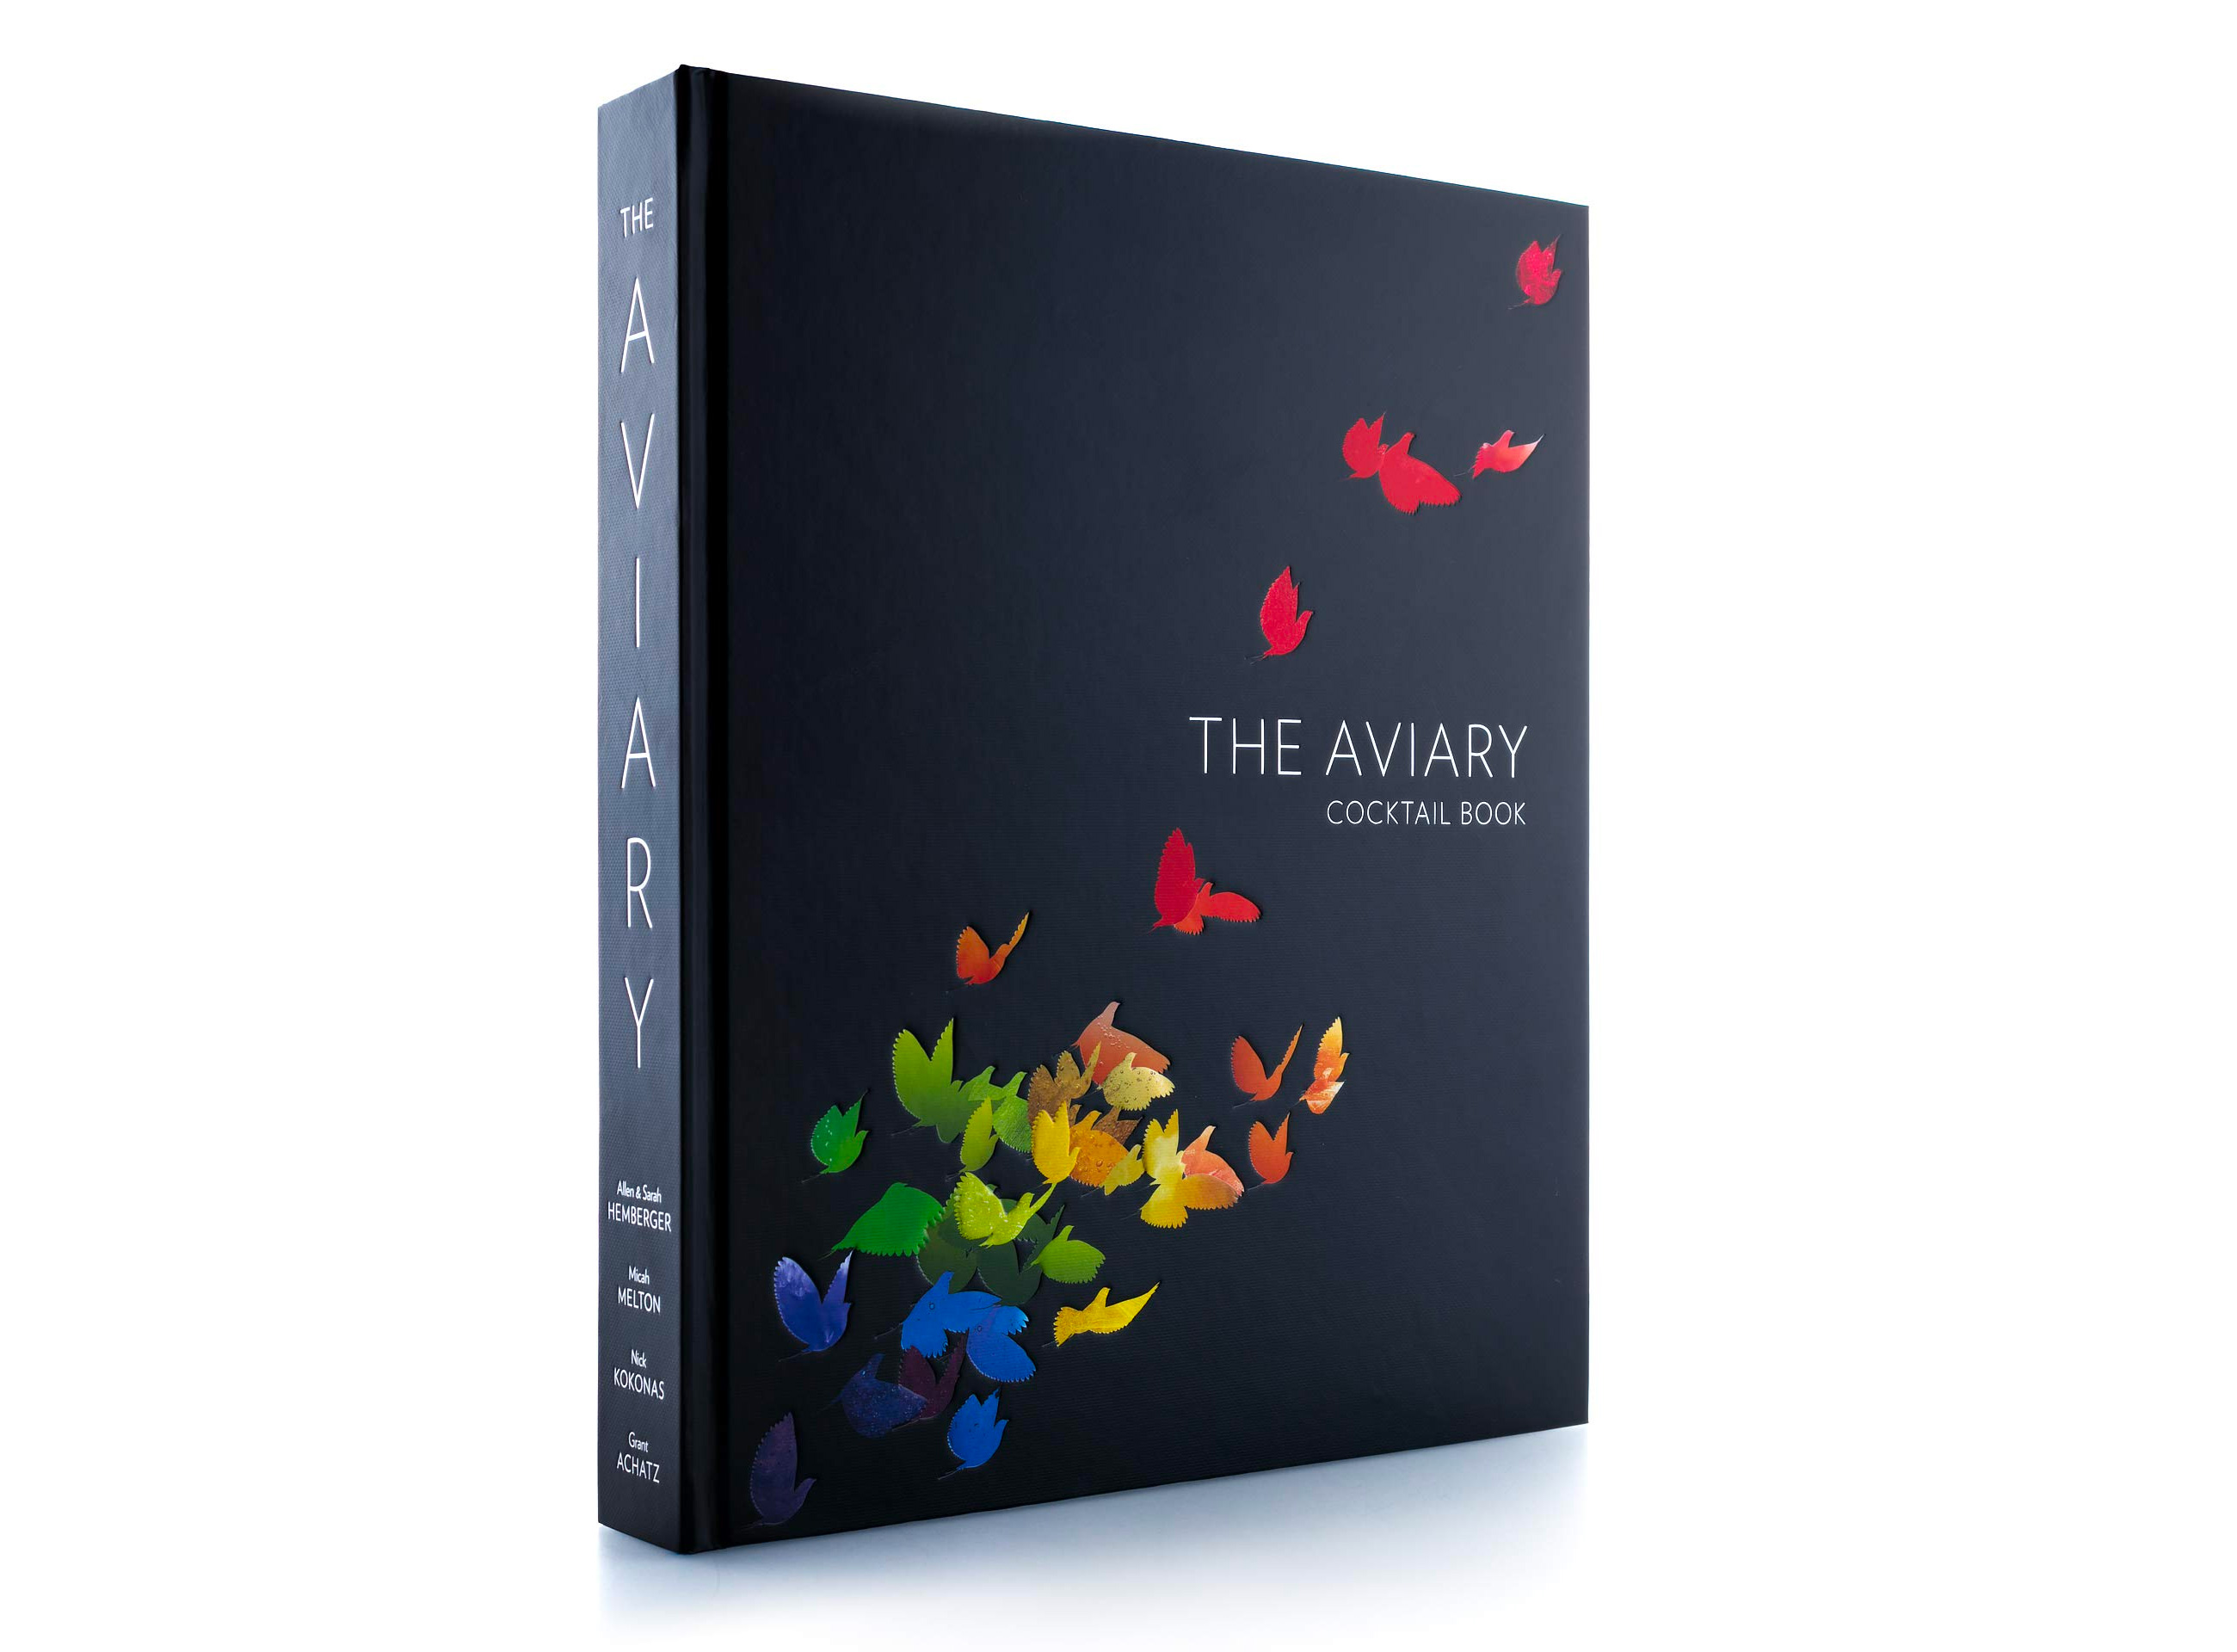 From Acclaimed Chicago Bar: <i>The Aviary Cocktail Book</i> at werd.com